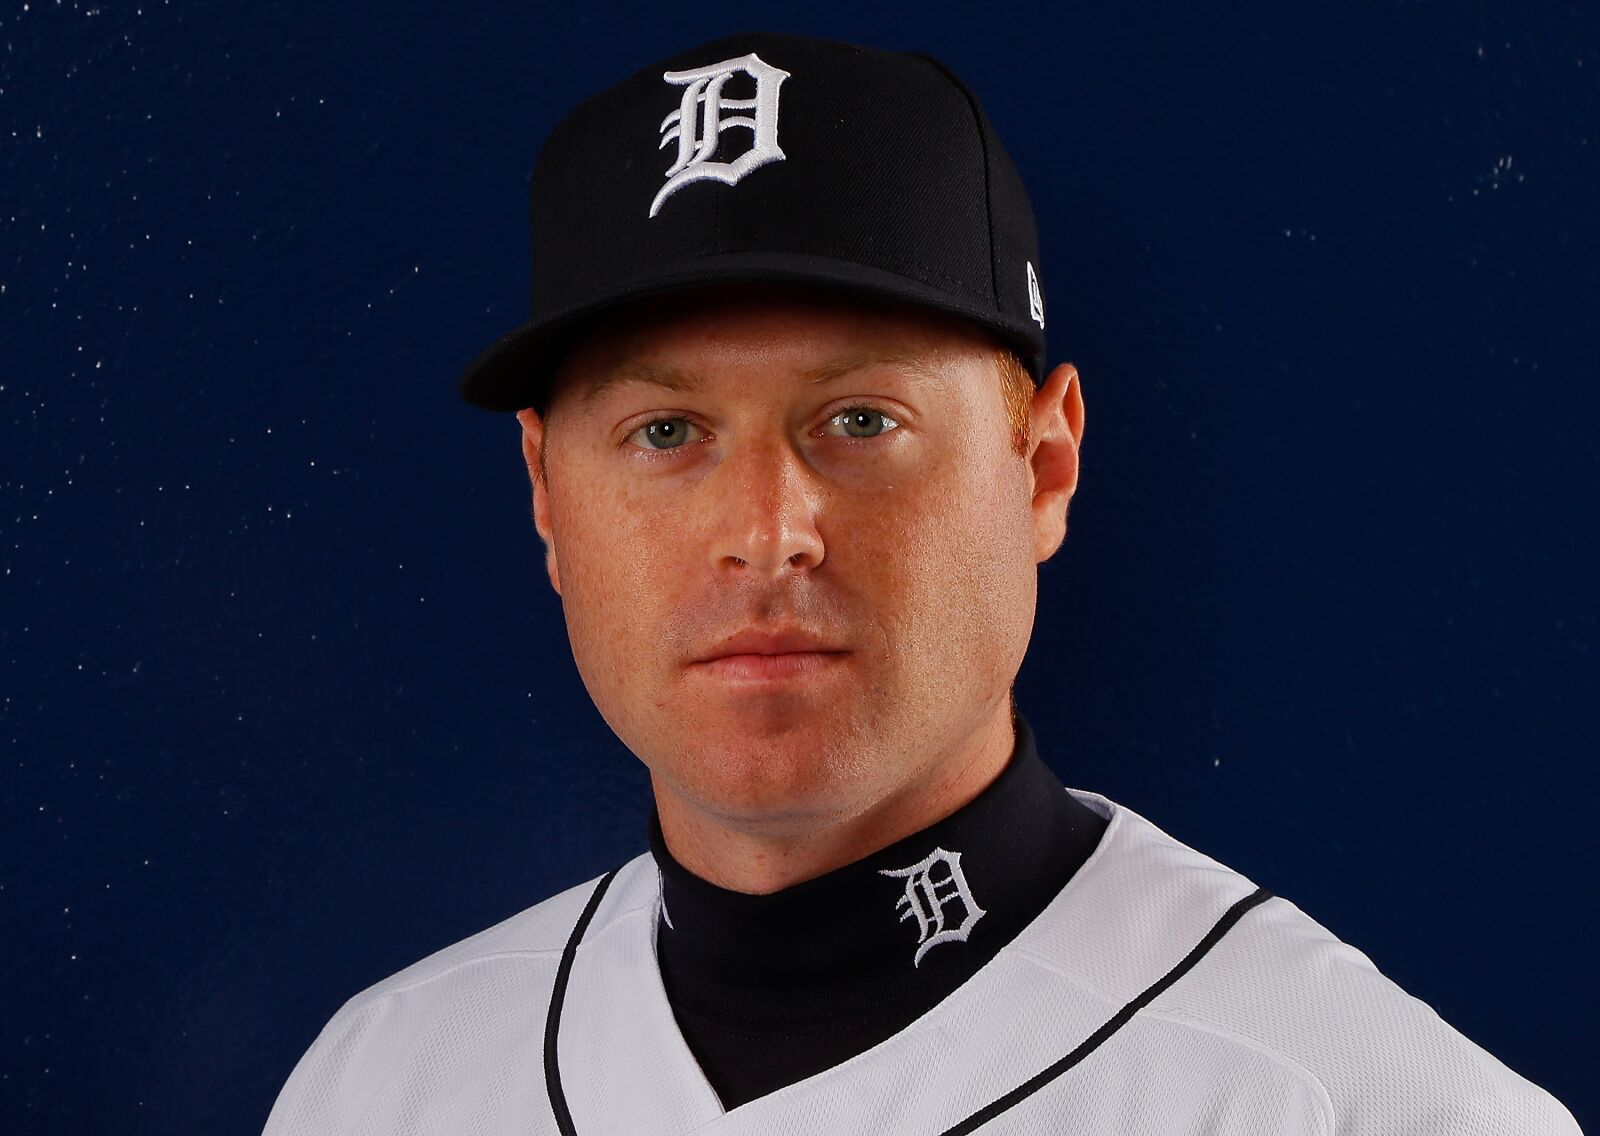 921628782-detroit-tigers-photo-day.jpg